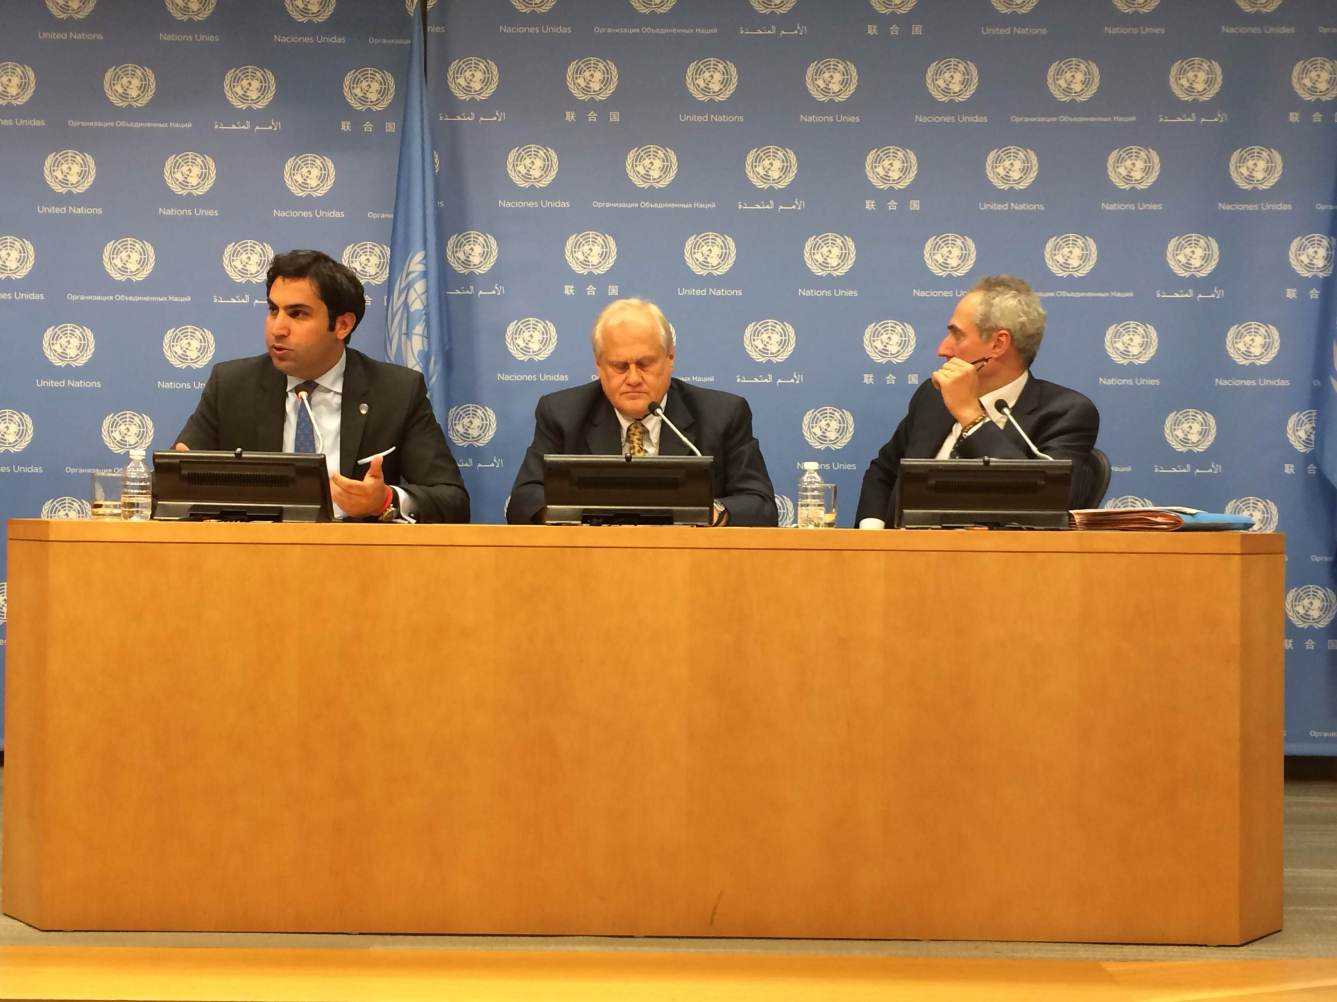 Youth Envoy Ahmad Alhendawi; the President of UN ECOSOC, Ambassador Martin Sajdik; UN Spokesperson Stéphane Dujarric during the noon briefing